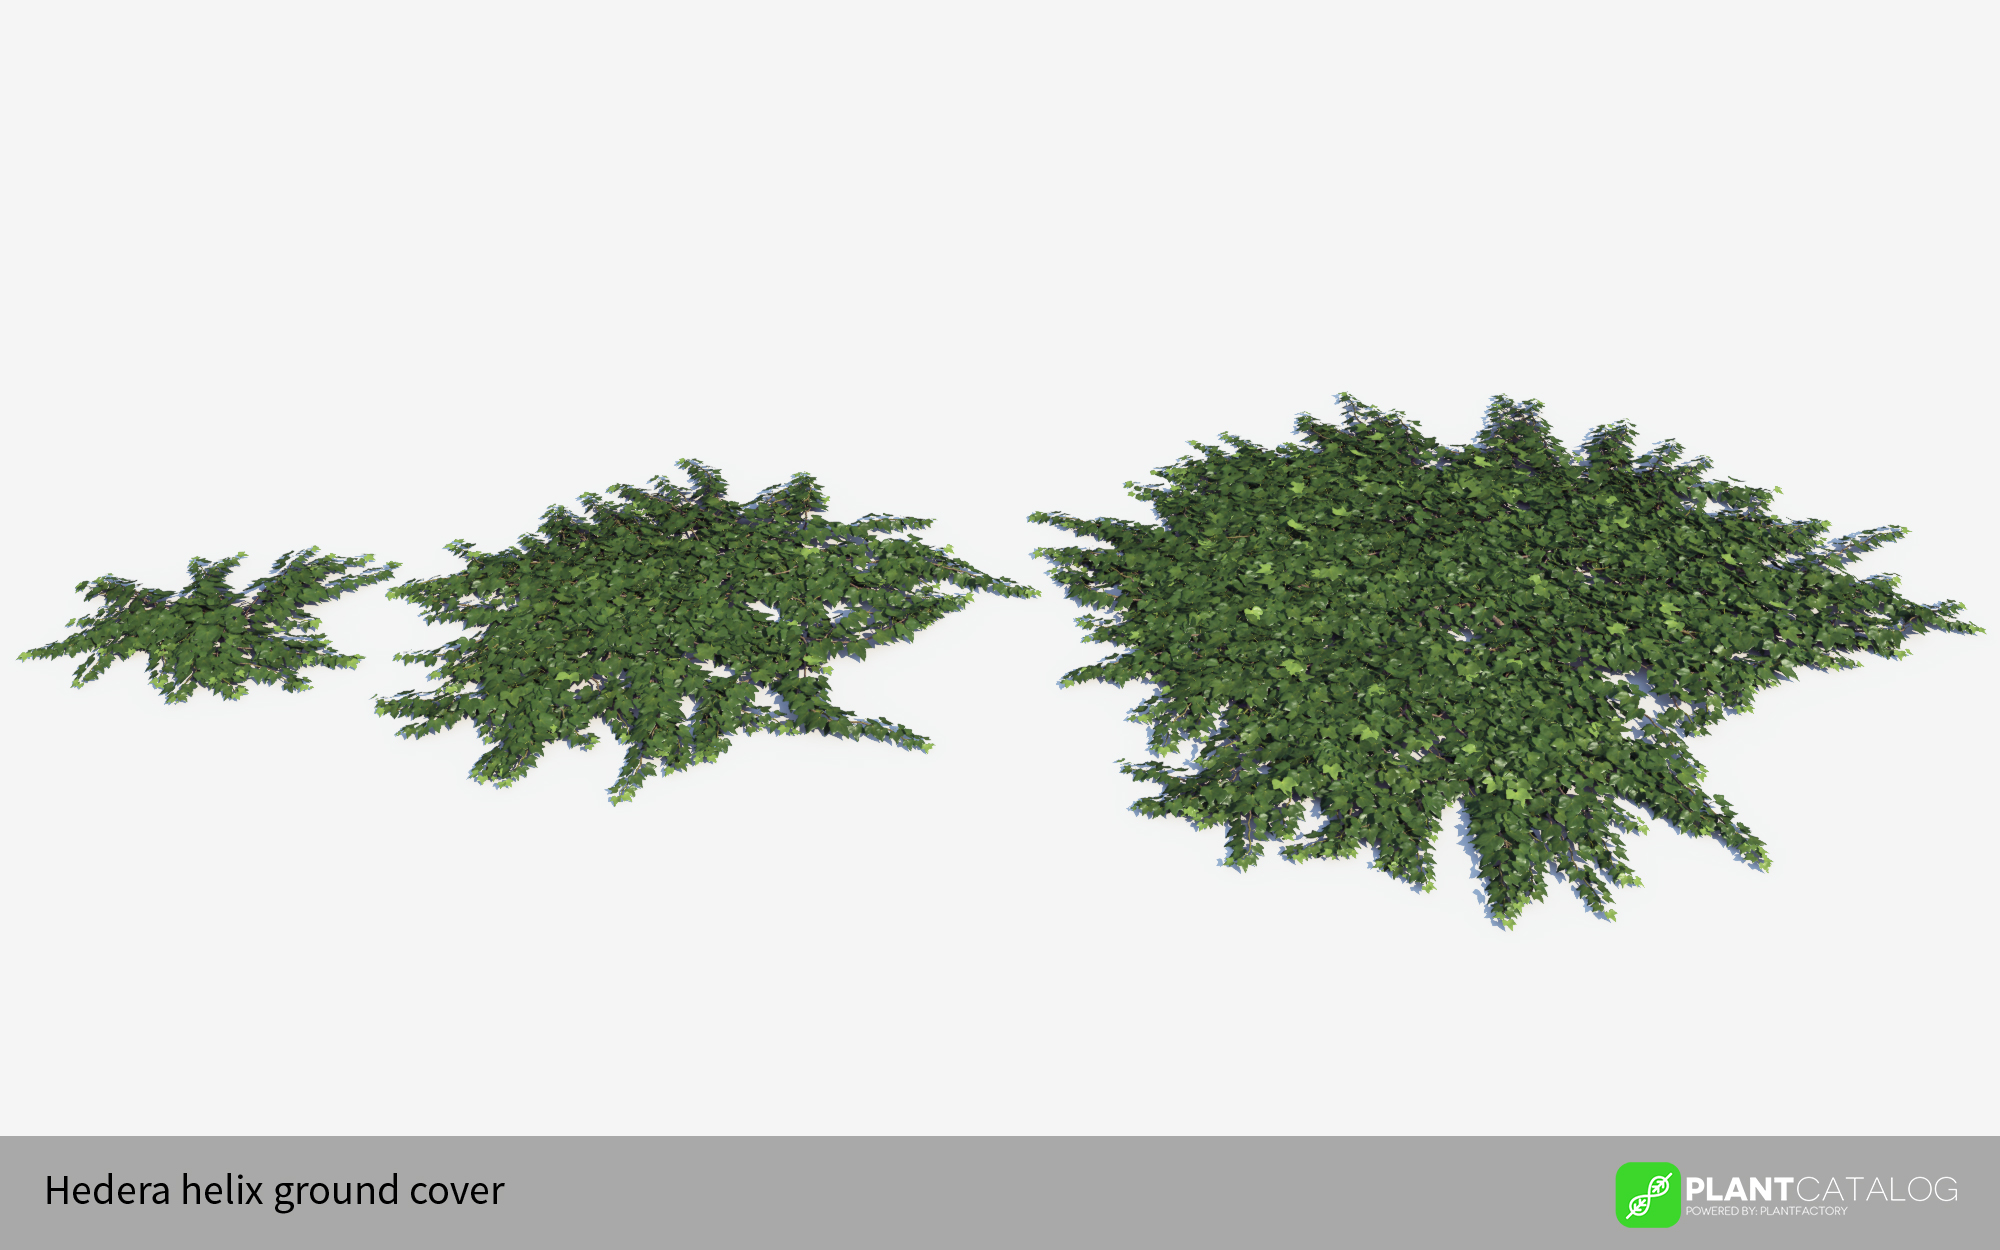 3D model of the Green ivy ground cover - Hedera helix ground cover green - from the PlantCatalog, rendered in VUE